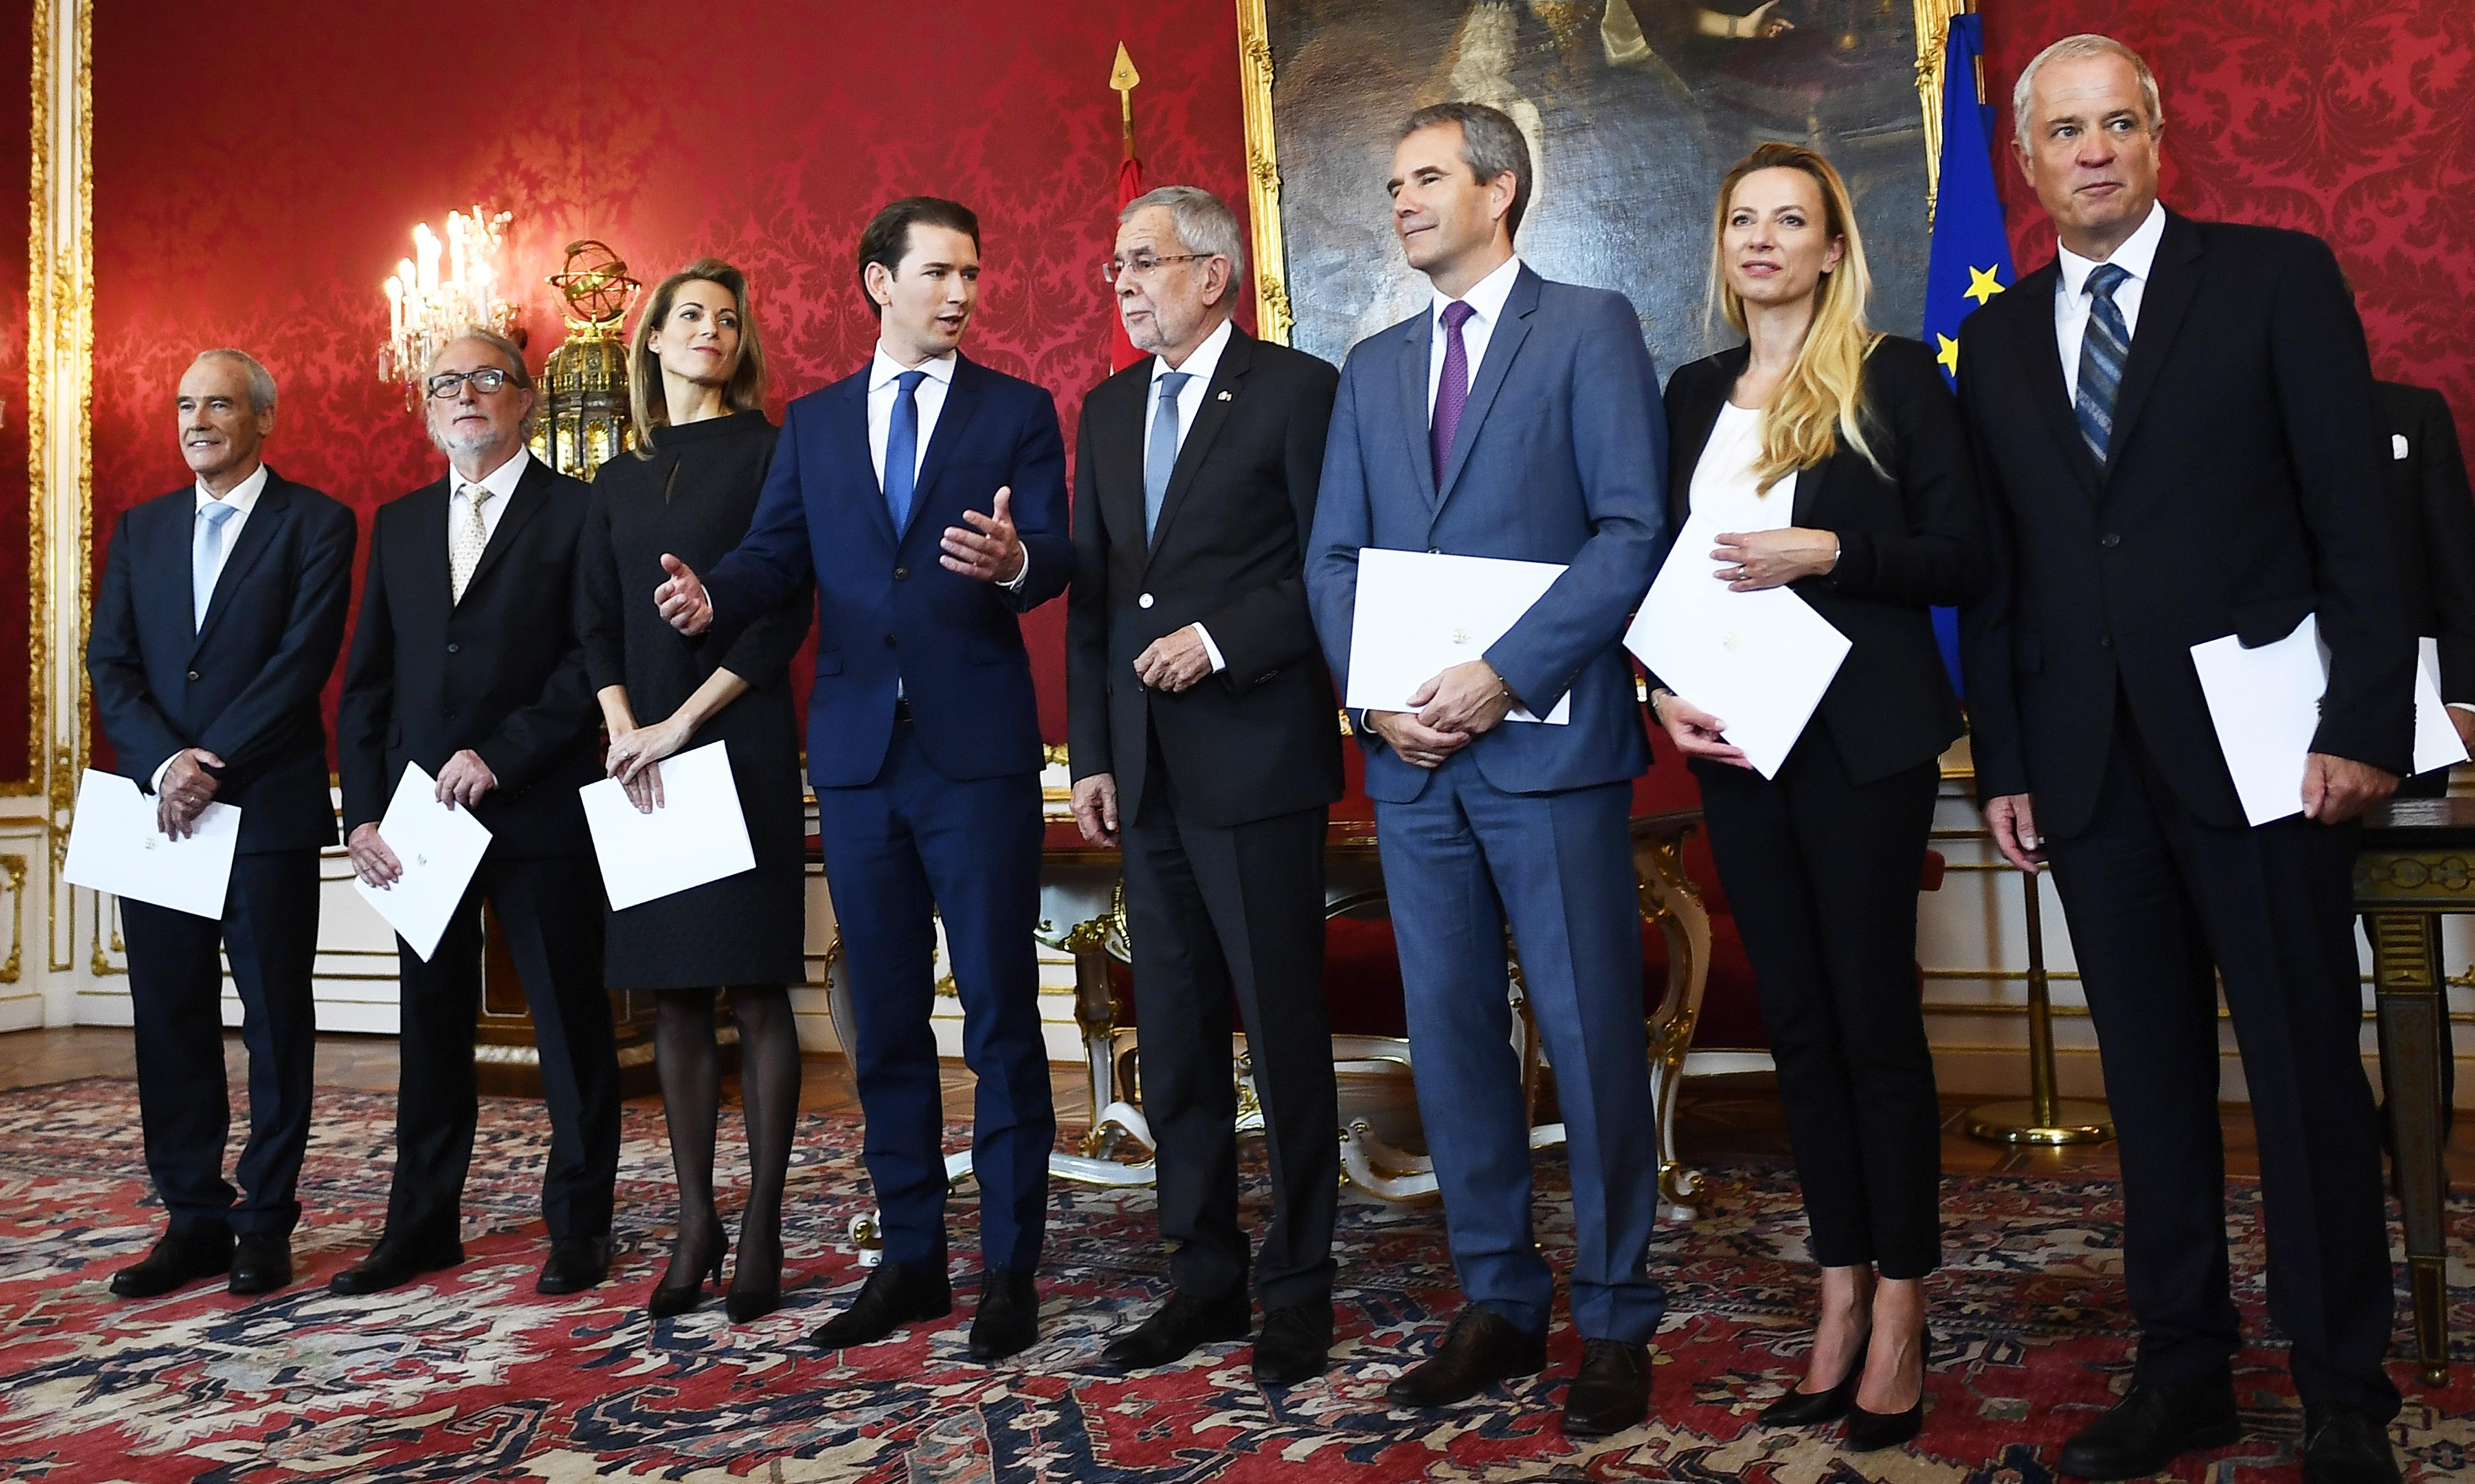 Austria's crisis is a lesson for Europe: far-right parties are unfit to govern